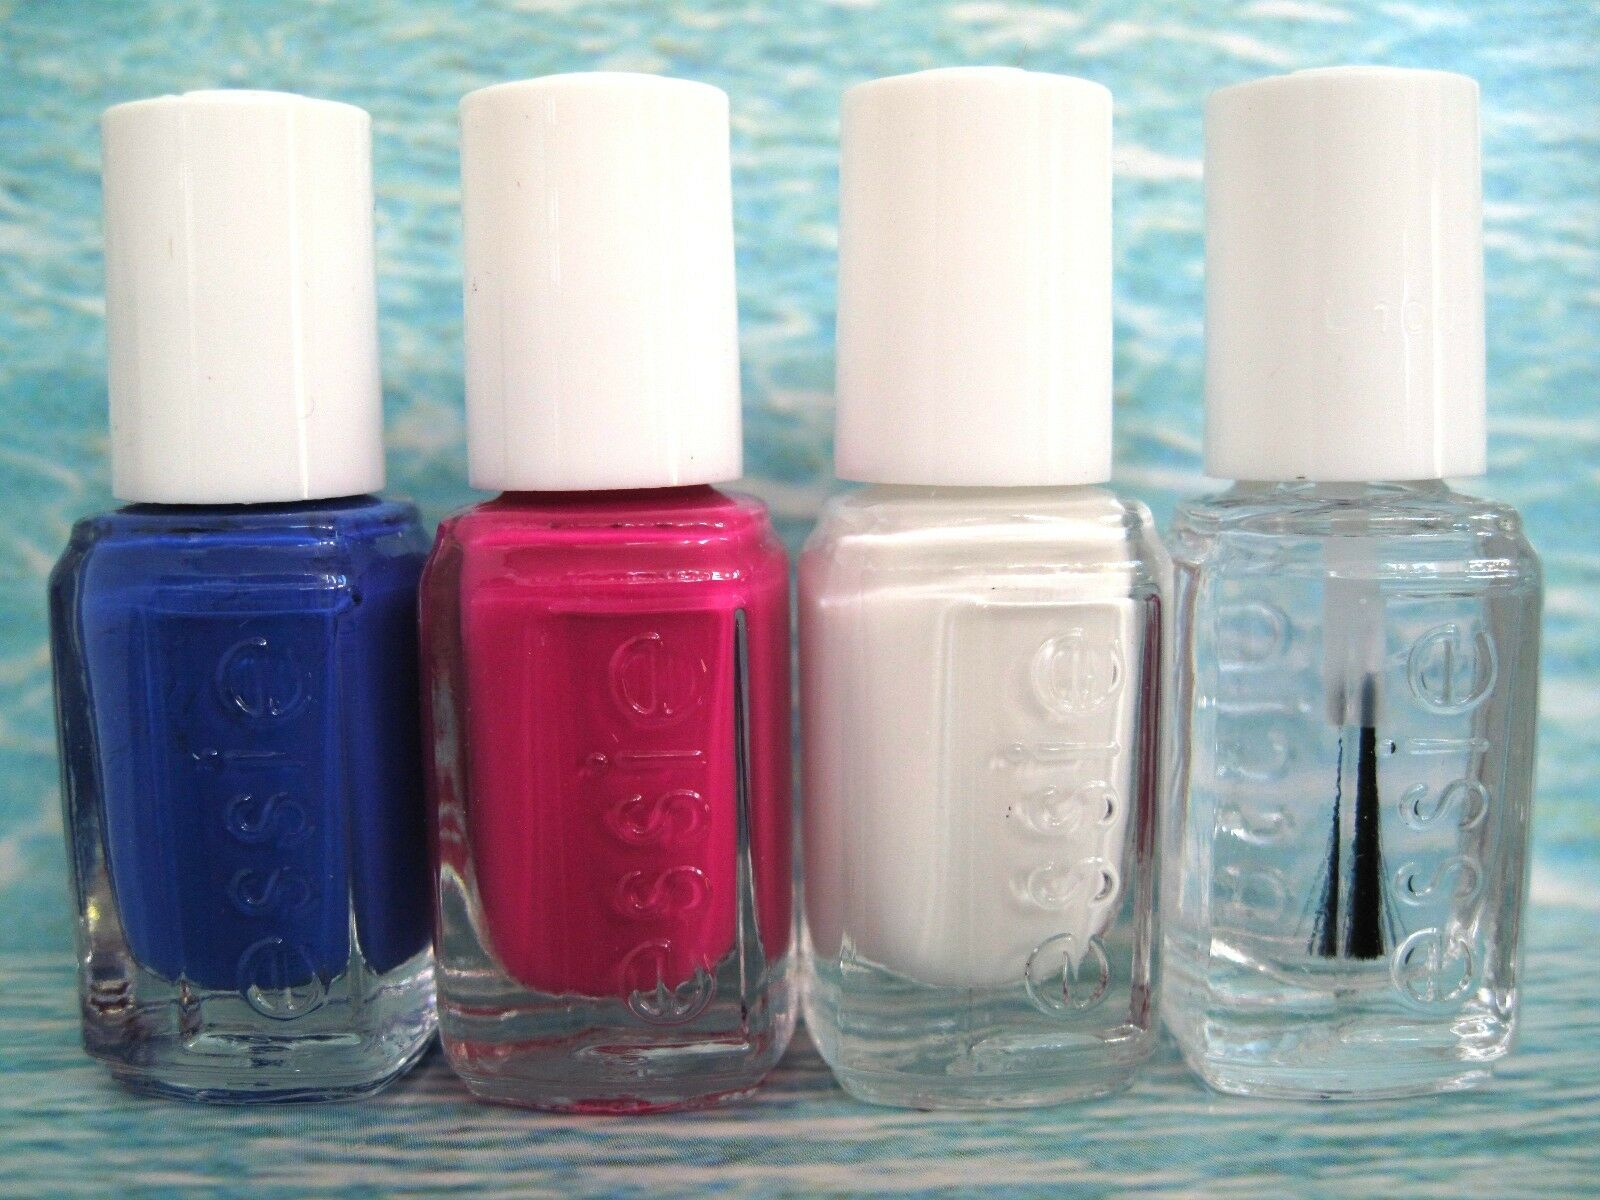 essie 2014 Summer Too Taboo Neon Mini Nail Polish Set of 4 Chills ...